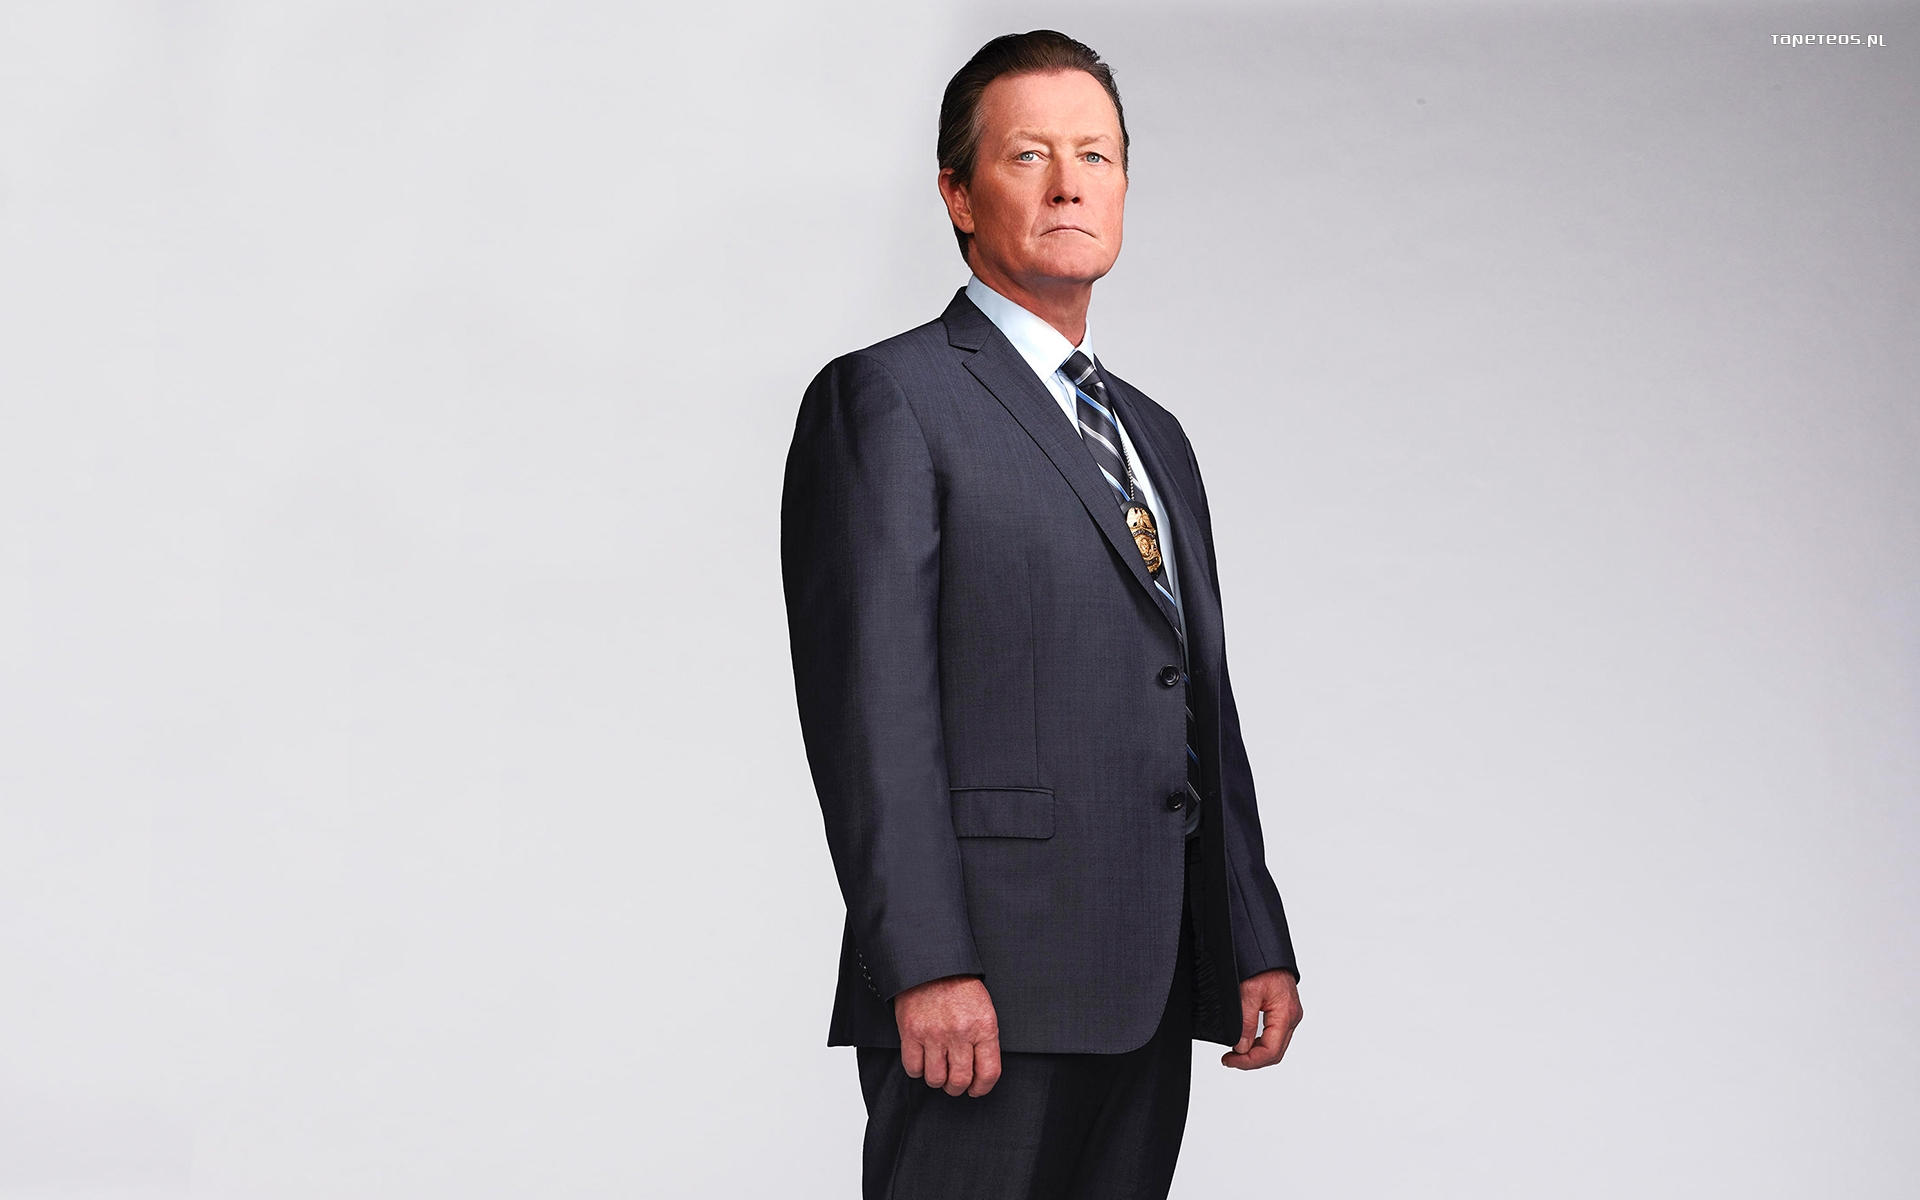 Skorpion 2014 TV Scorpion 016 Robert Patrick jako Agent Cabe Gallo